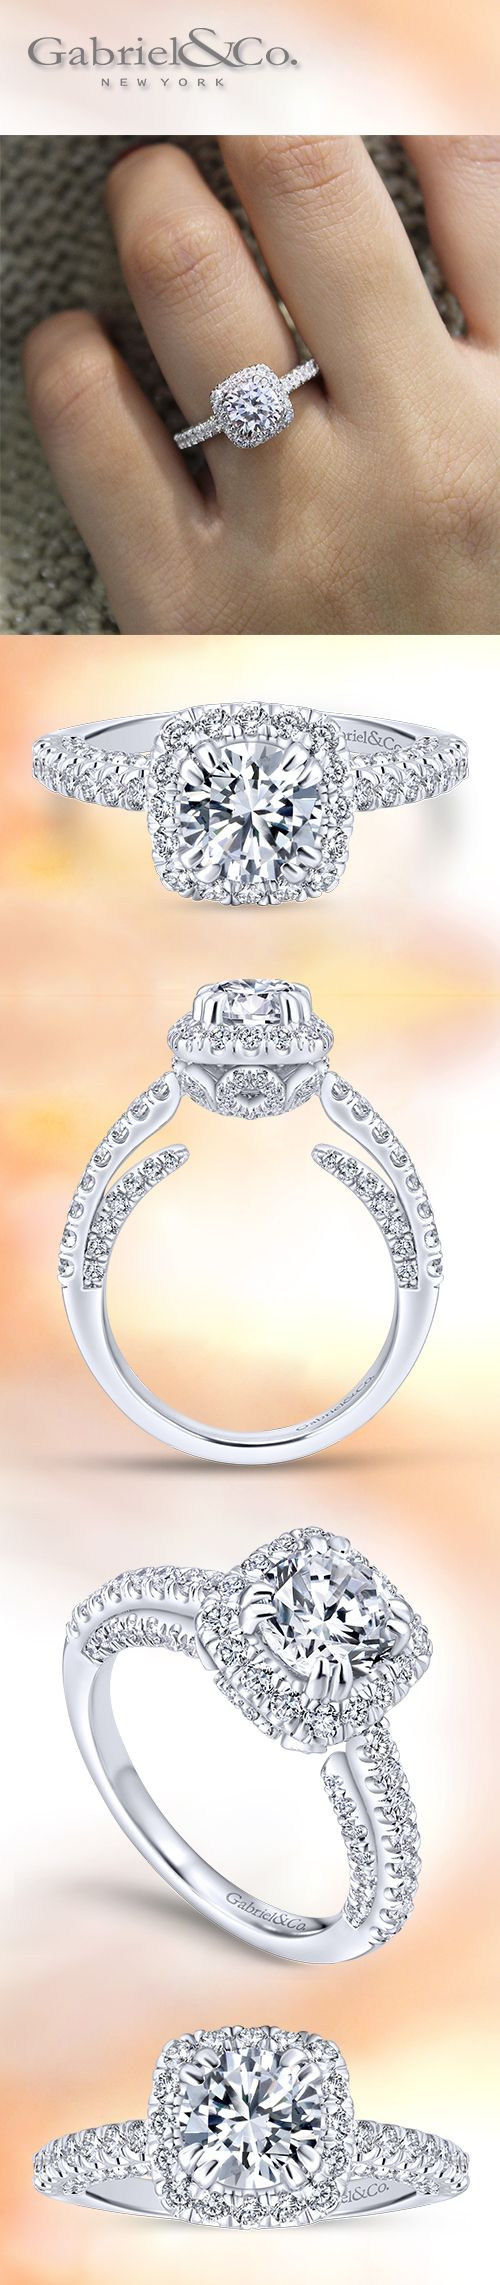 Gabriel & Co. - Voted #1 Preferred Jewelry Designer. The Classic 14k White Gold Round-Cut Diamond Halo Engagement Ring.